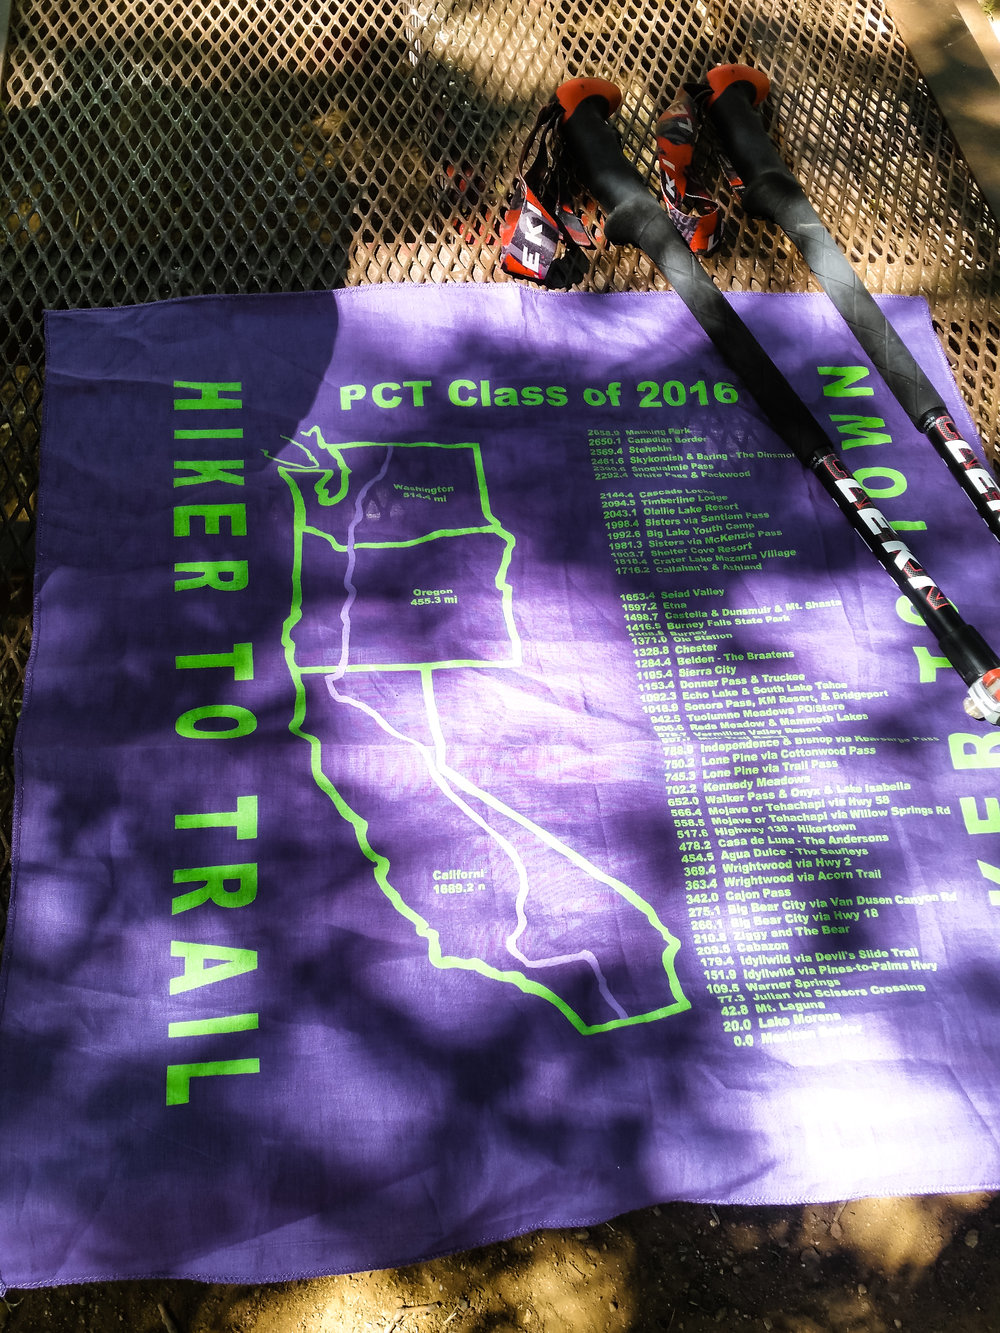 PCT Class of 2016